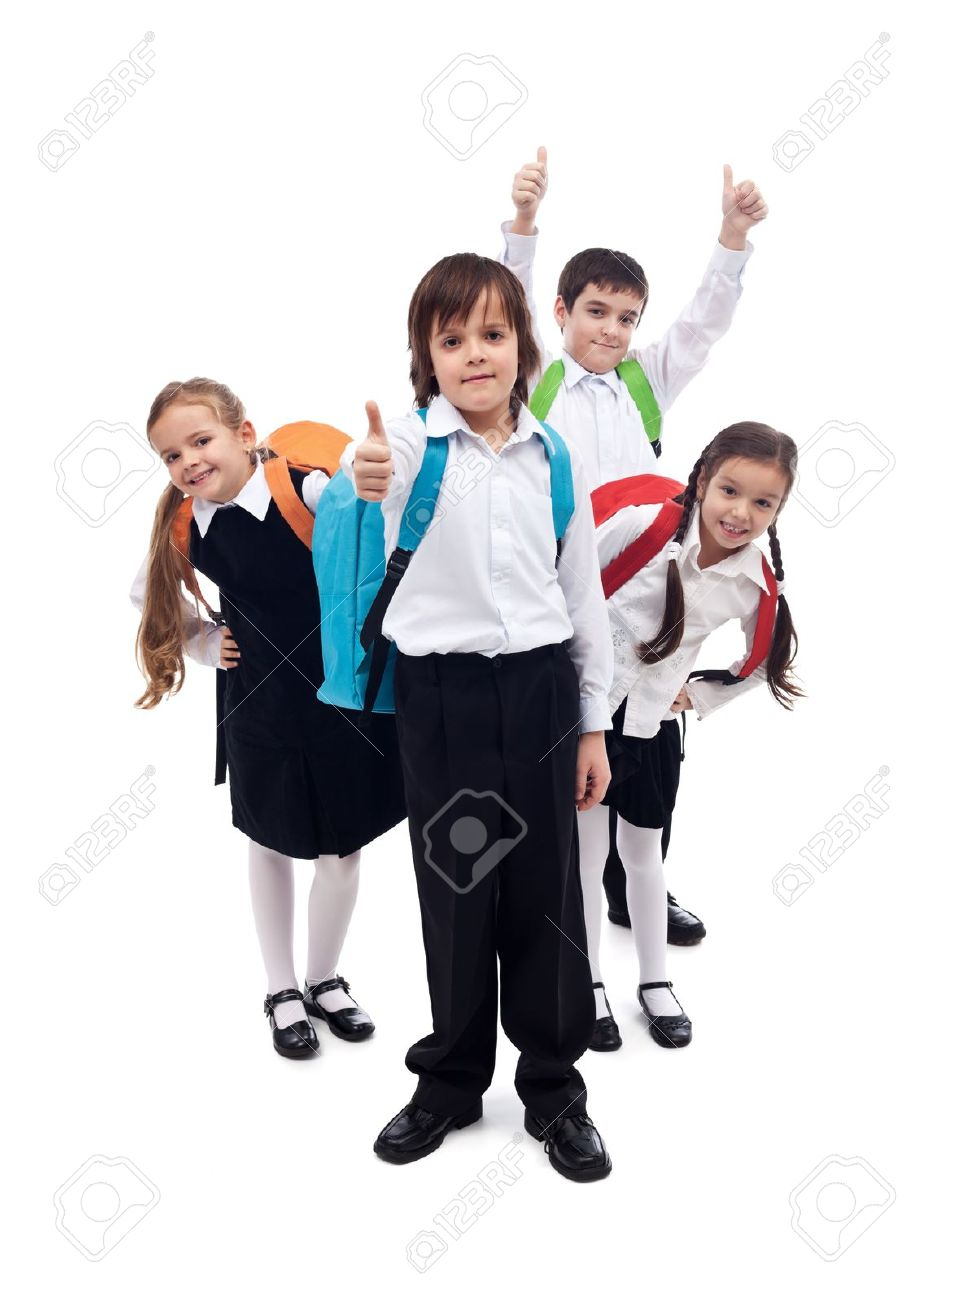 Group of happy kids with backpacks returning to school after summer vacation - 21140130